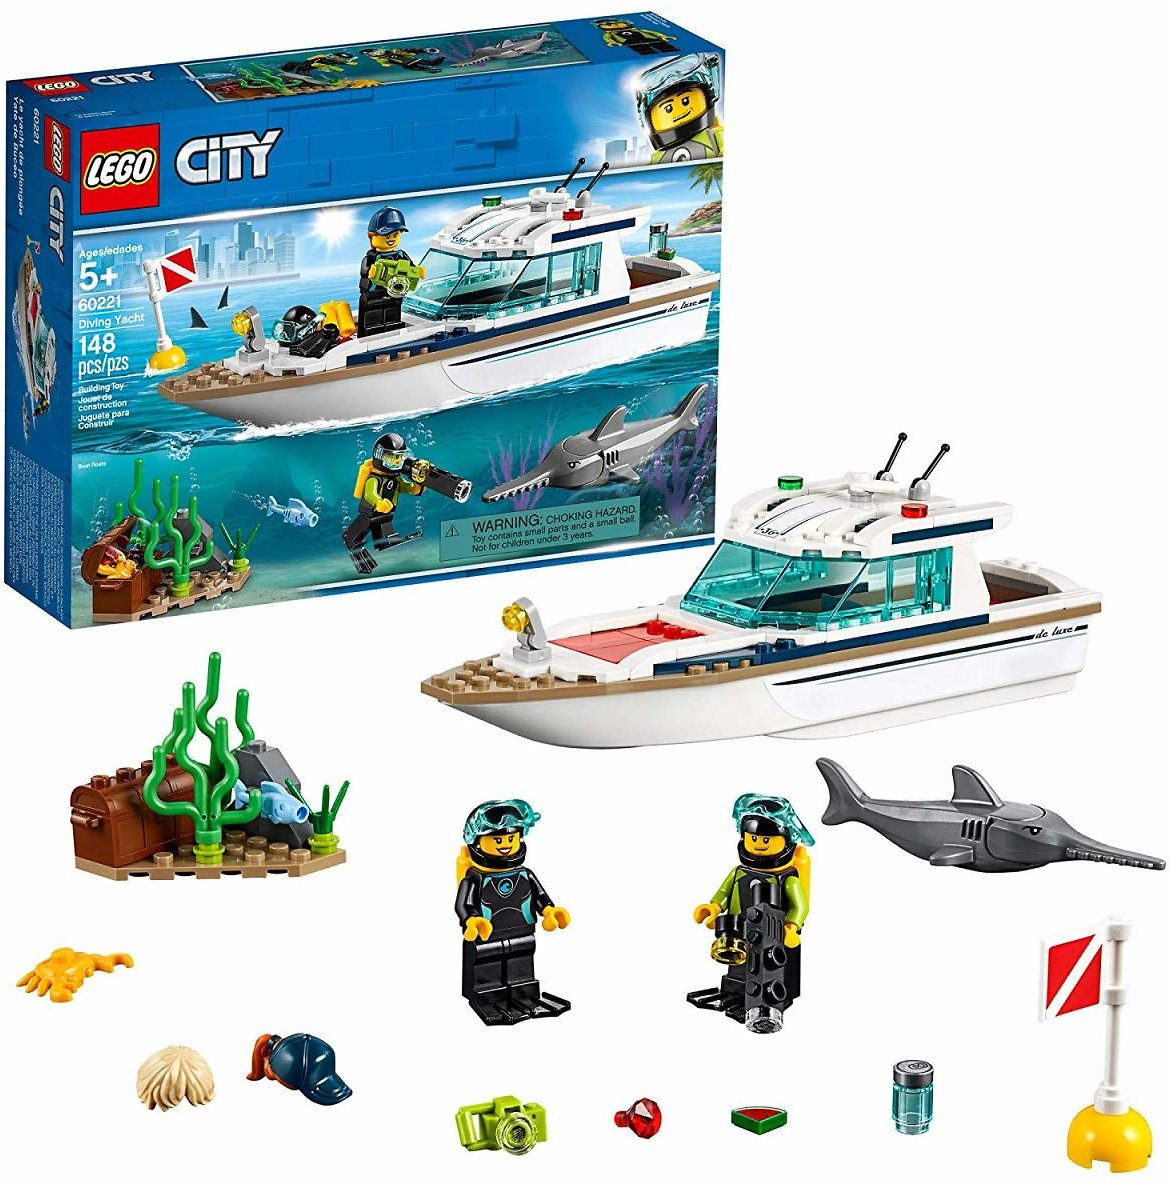 LEGO City Great Vehicles Diving Yacht 60221 Building Kit (148 Piece)